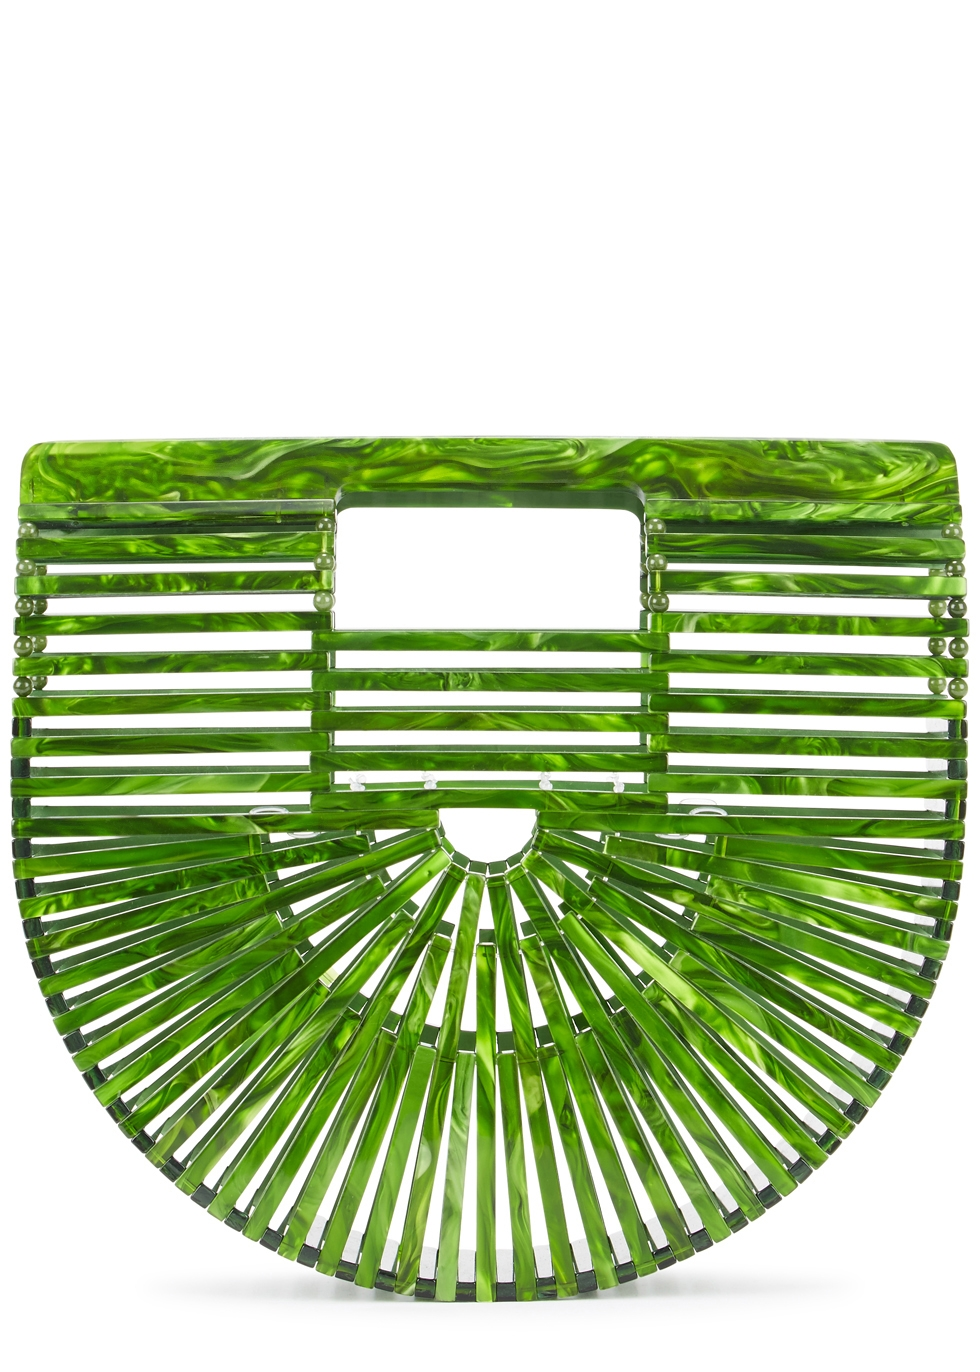 CULT GAIA ARK MINI GREEN CLUTCH